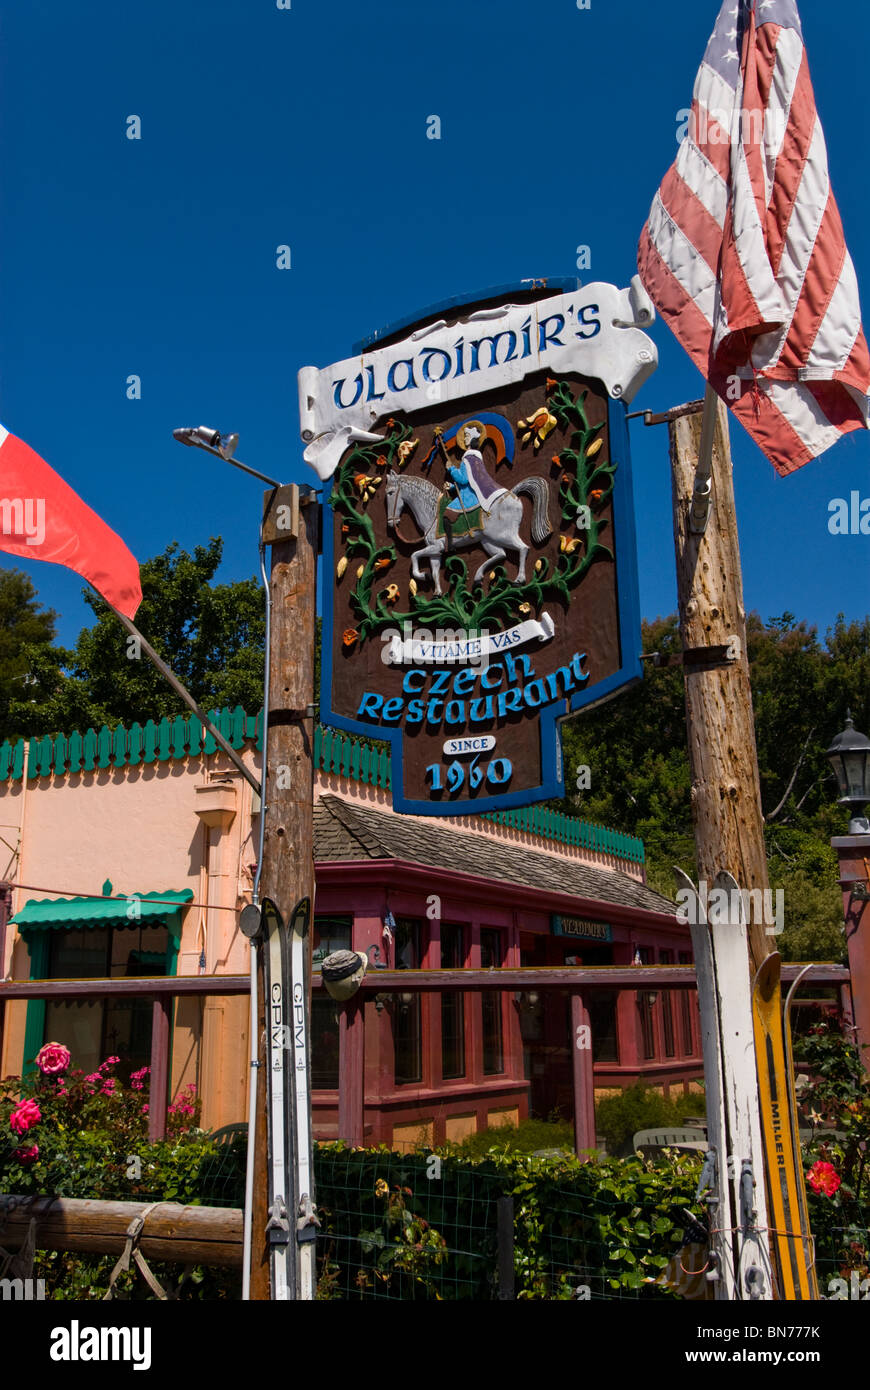 Vladimir's Czech Restaurant Inverness Park CA at Point Reyes National Seashore GGNRA - Stock Image